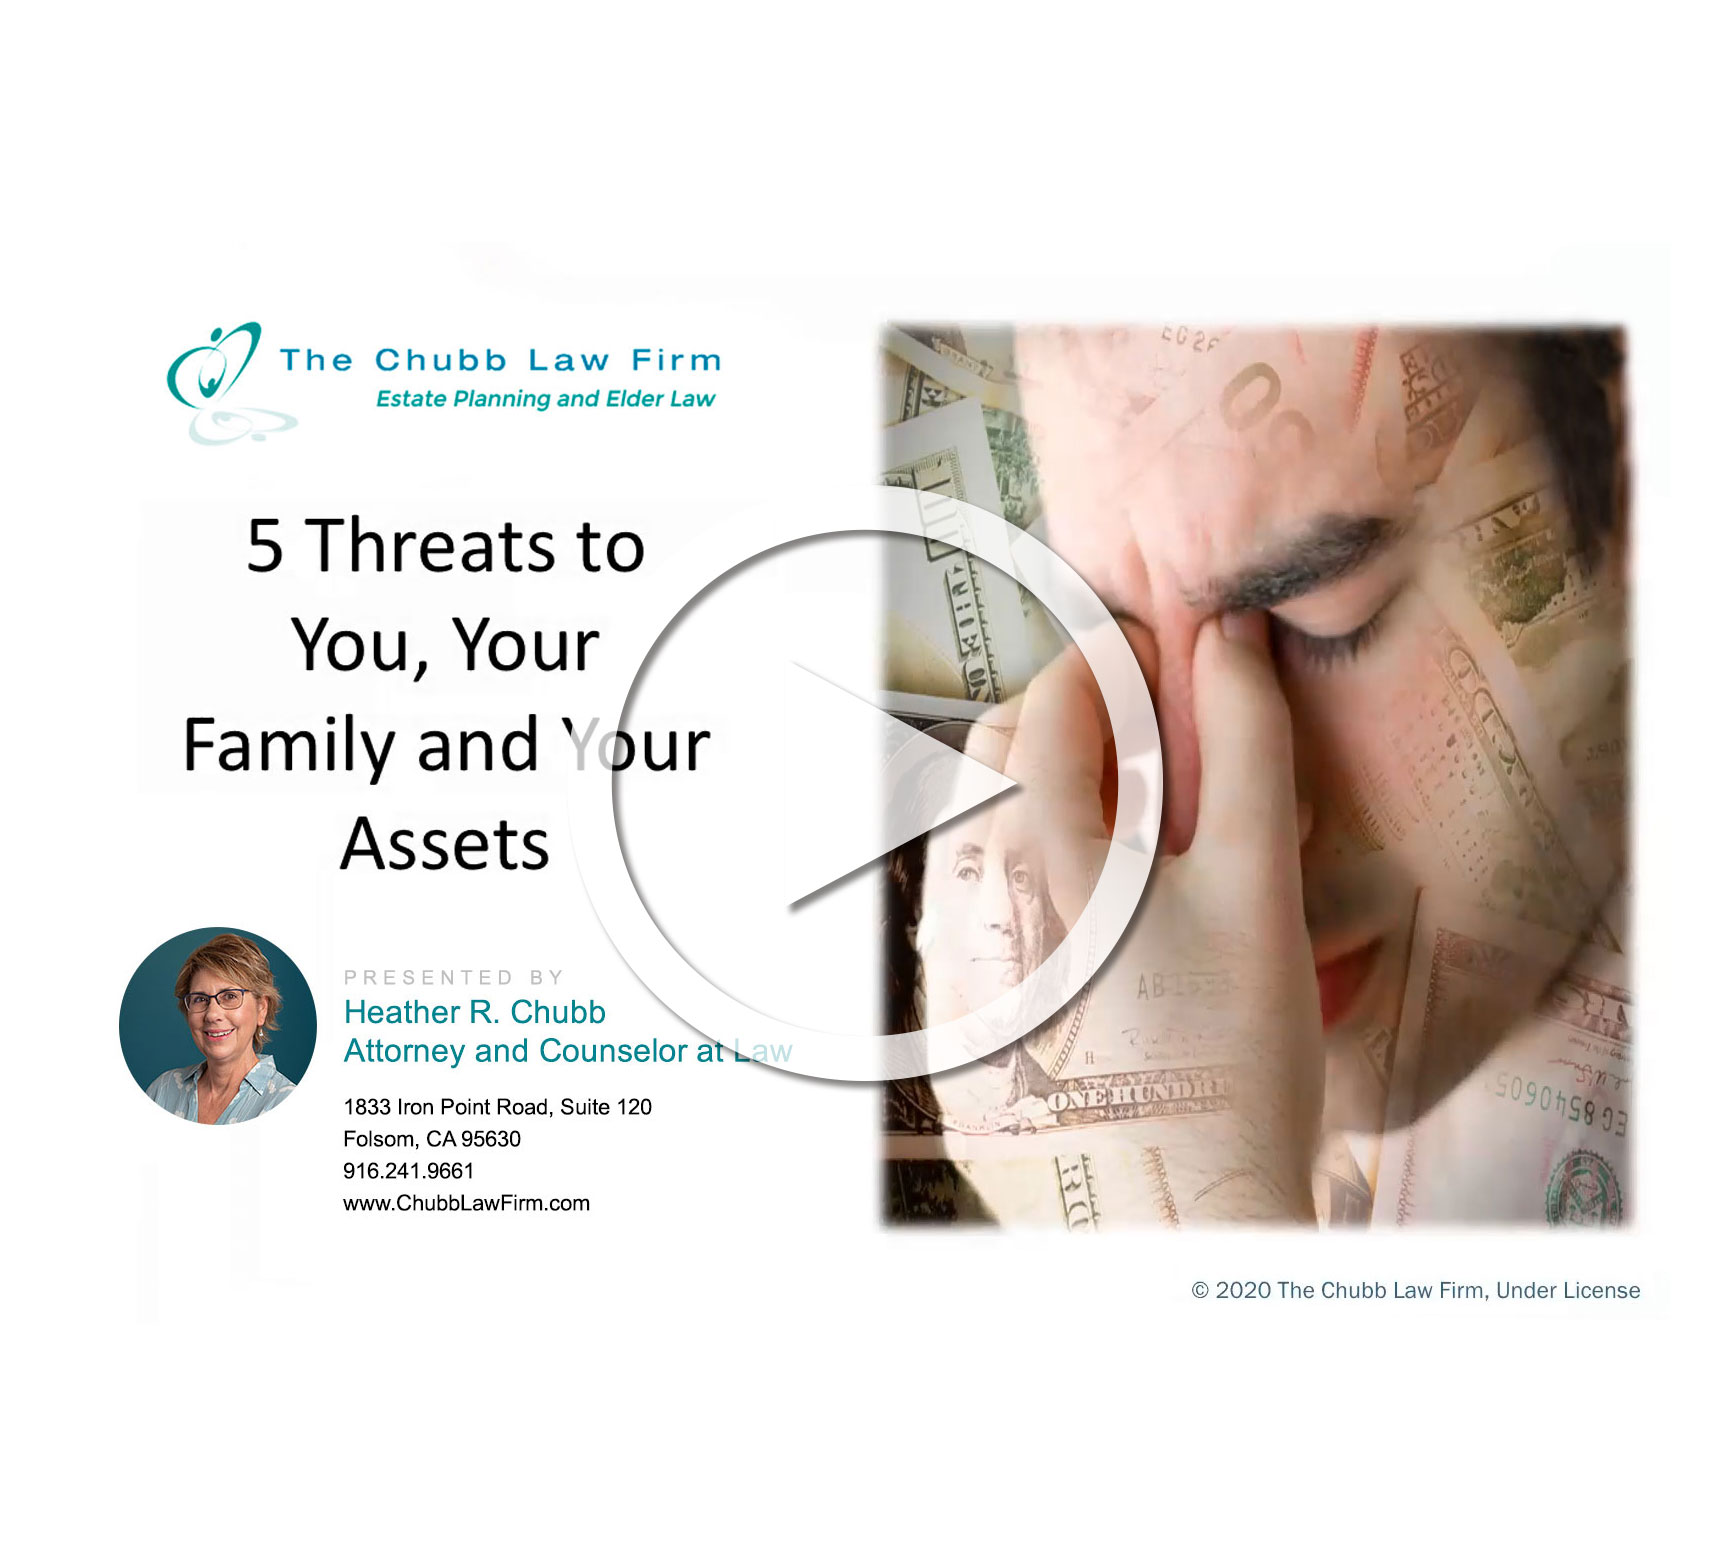 Seminar: 5 Threats to You, Your Family, and Your Assets